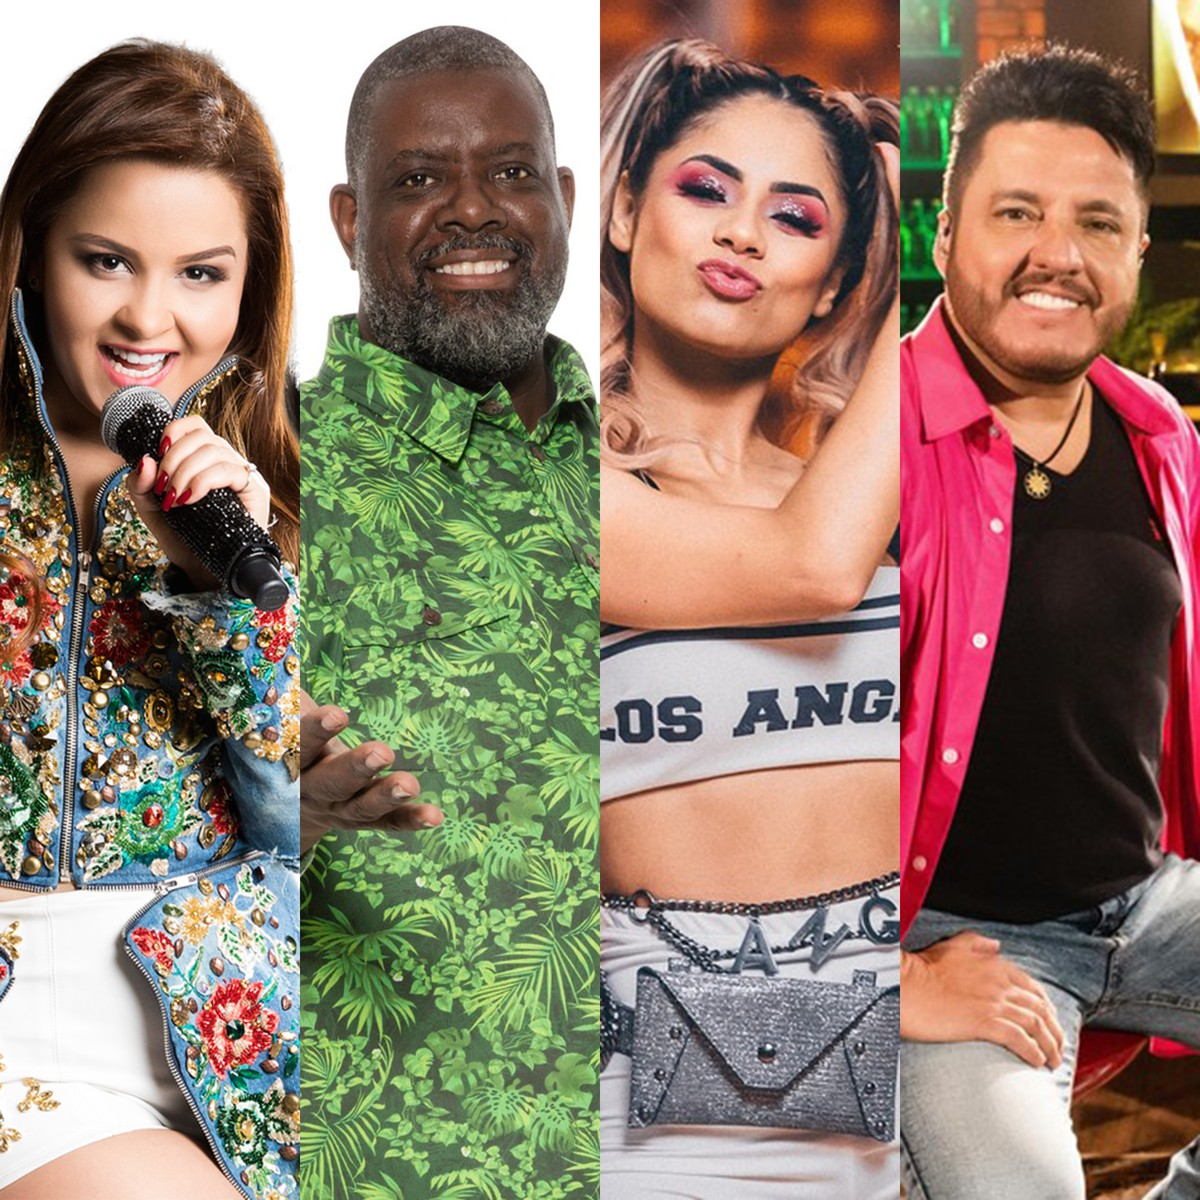 Lives de hoje: Maiara e Maraisa, Péricles, Lexa, festival com Bruno e Marrone e mais shows